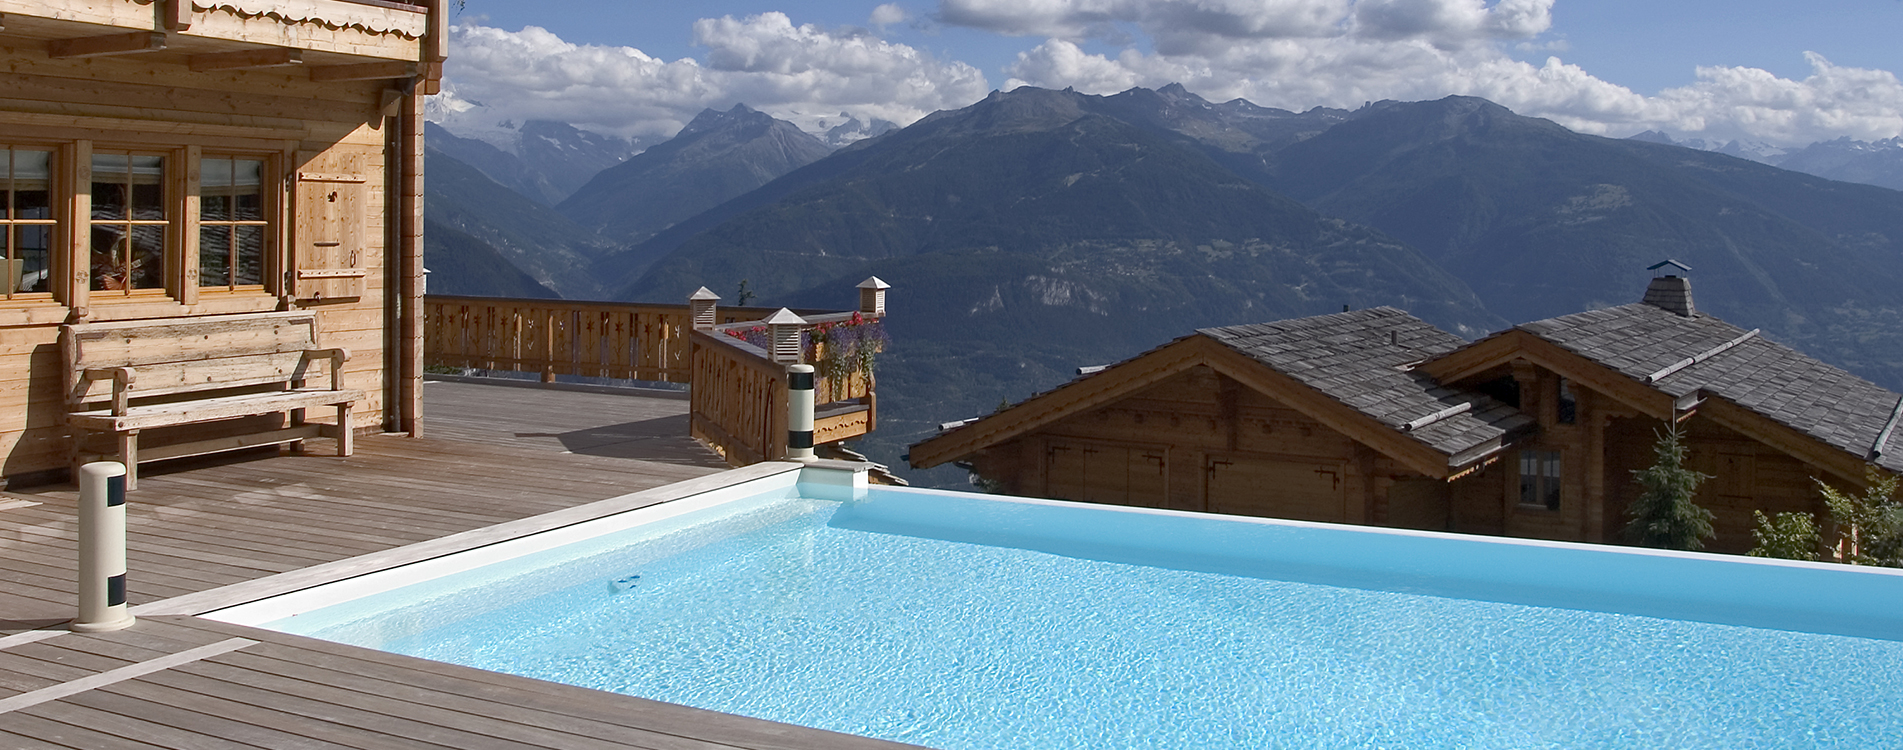 construction-piscine-valais-3